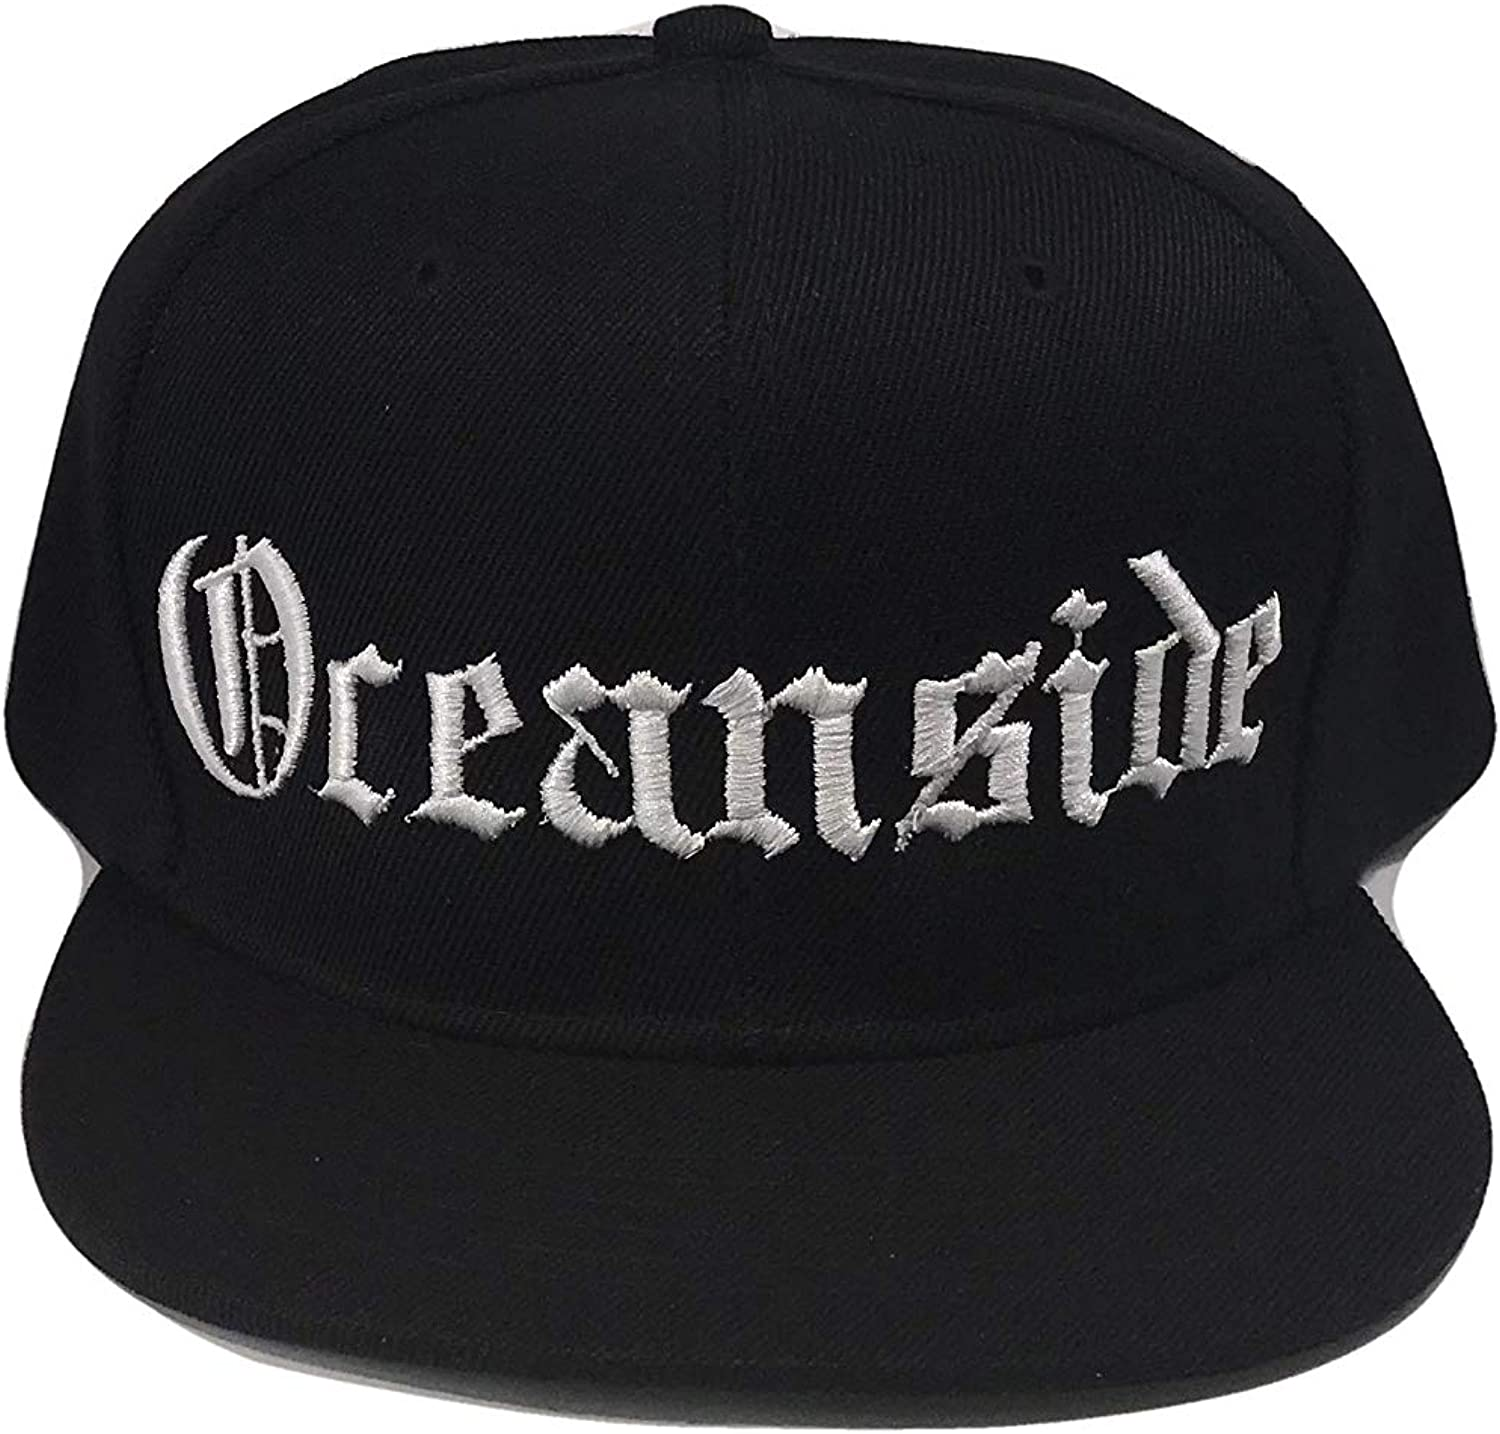 The Hat Shoppe Oceanside CA Flat Bill Snapback Flat Bill Cap (One Size, Black/White)